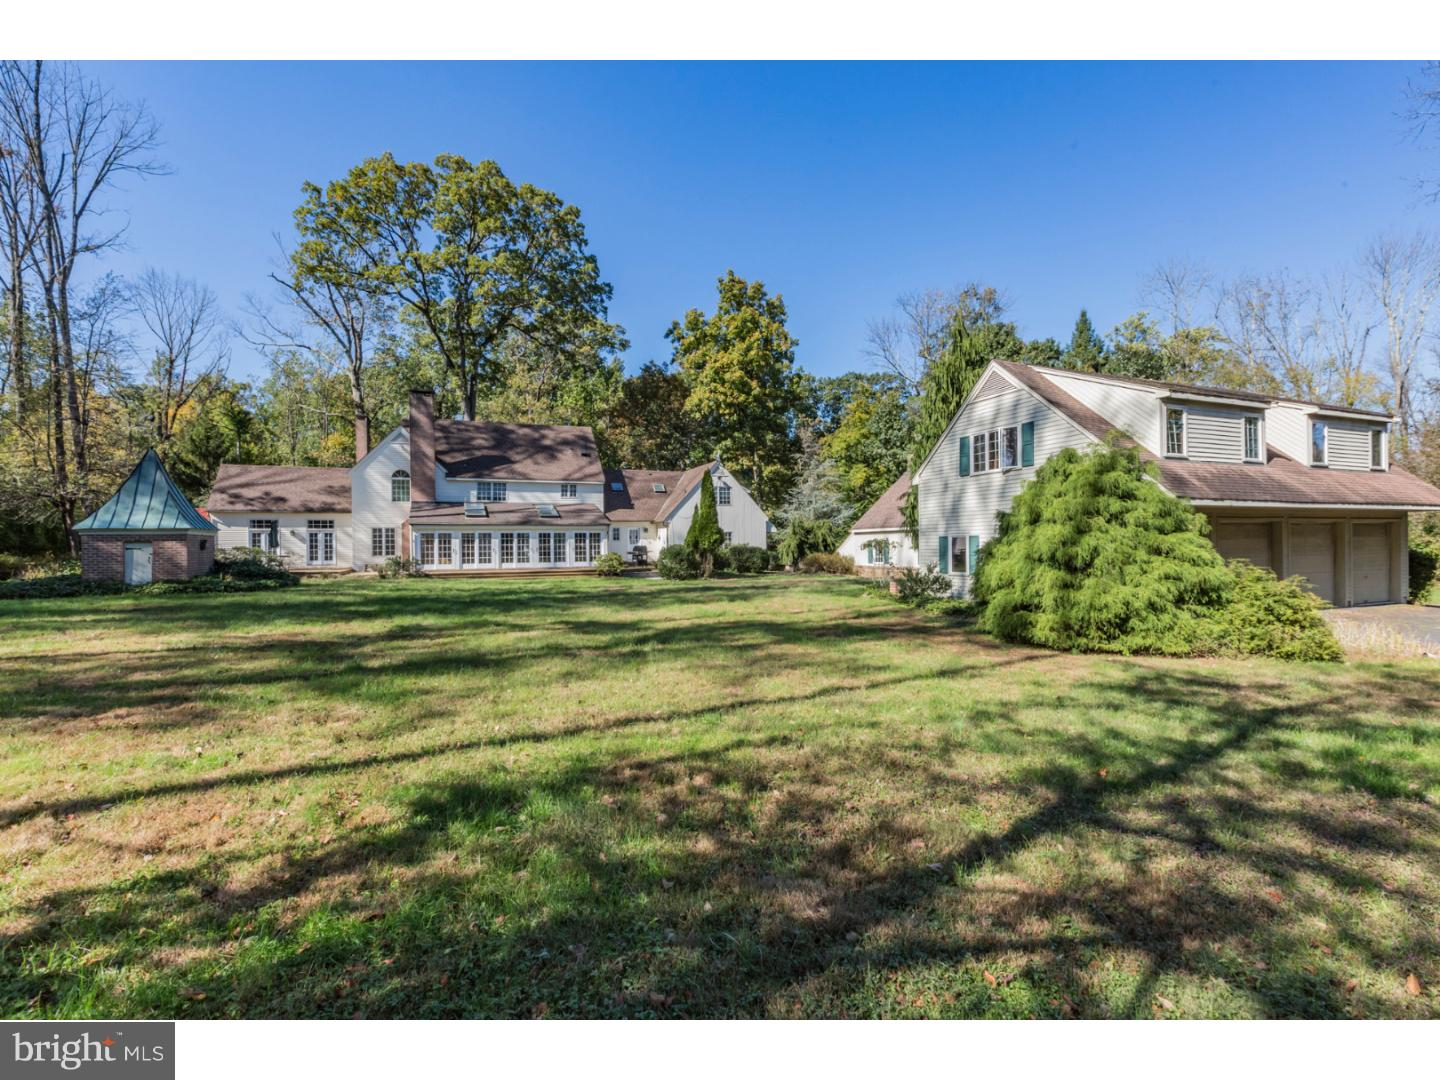 Property for Sale at 4497 PROVINCE LINE Road Princeton, New Jersey 08540 United States